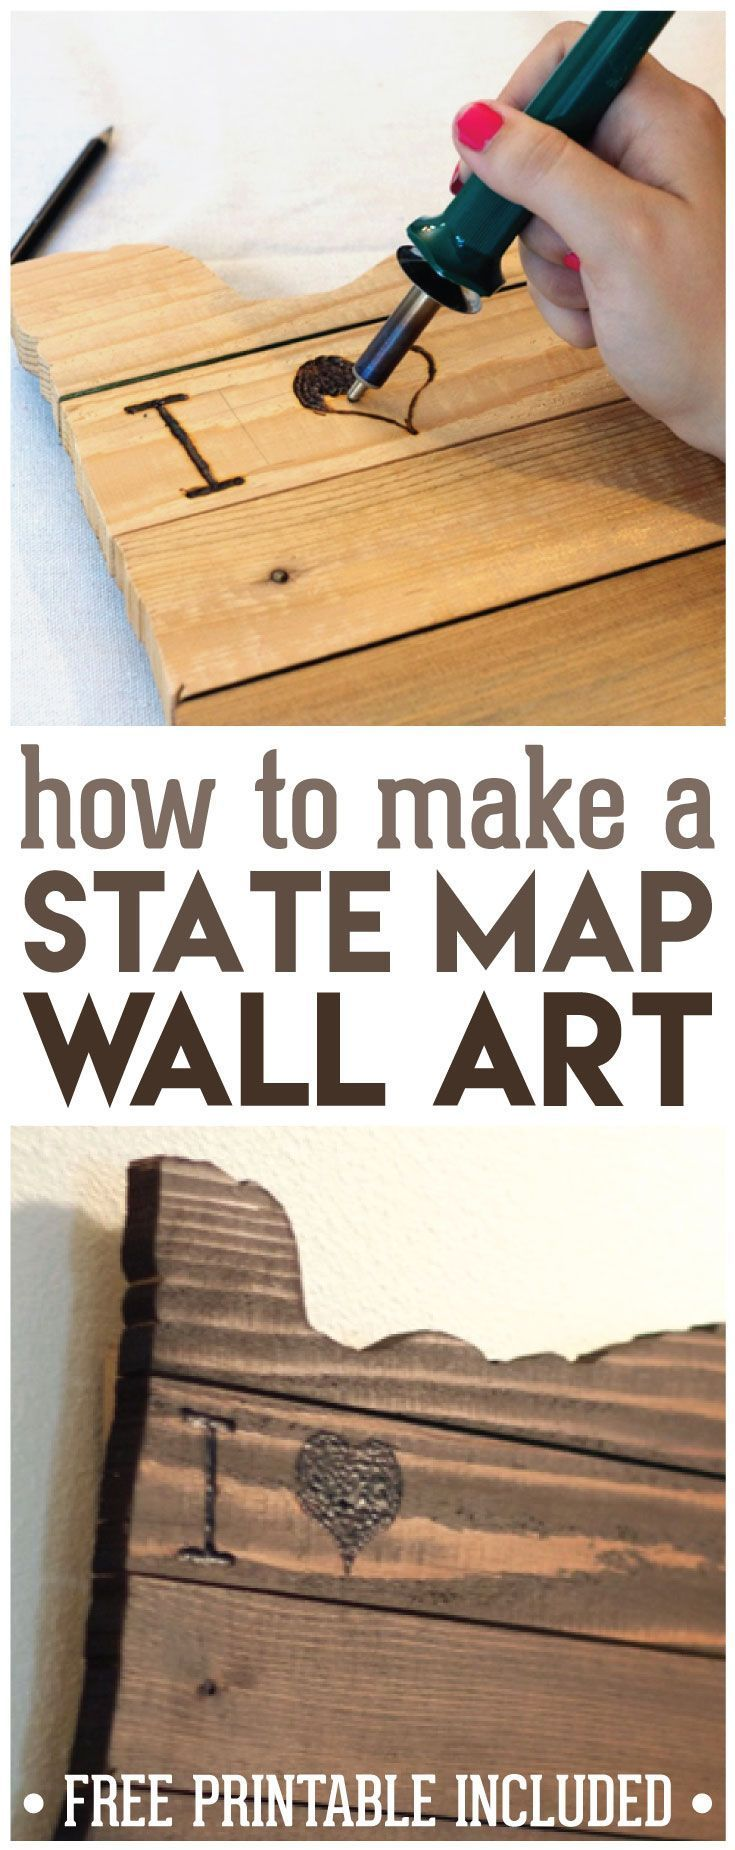 494 best DIY WALL ART images on Pinterest | Bricolage, Disney crafts ...